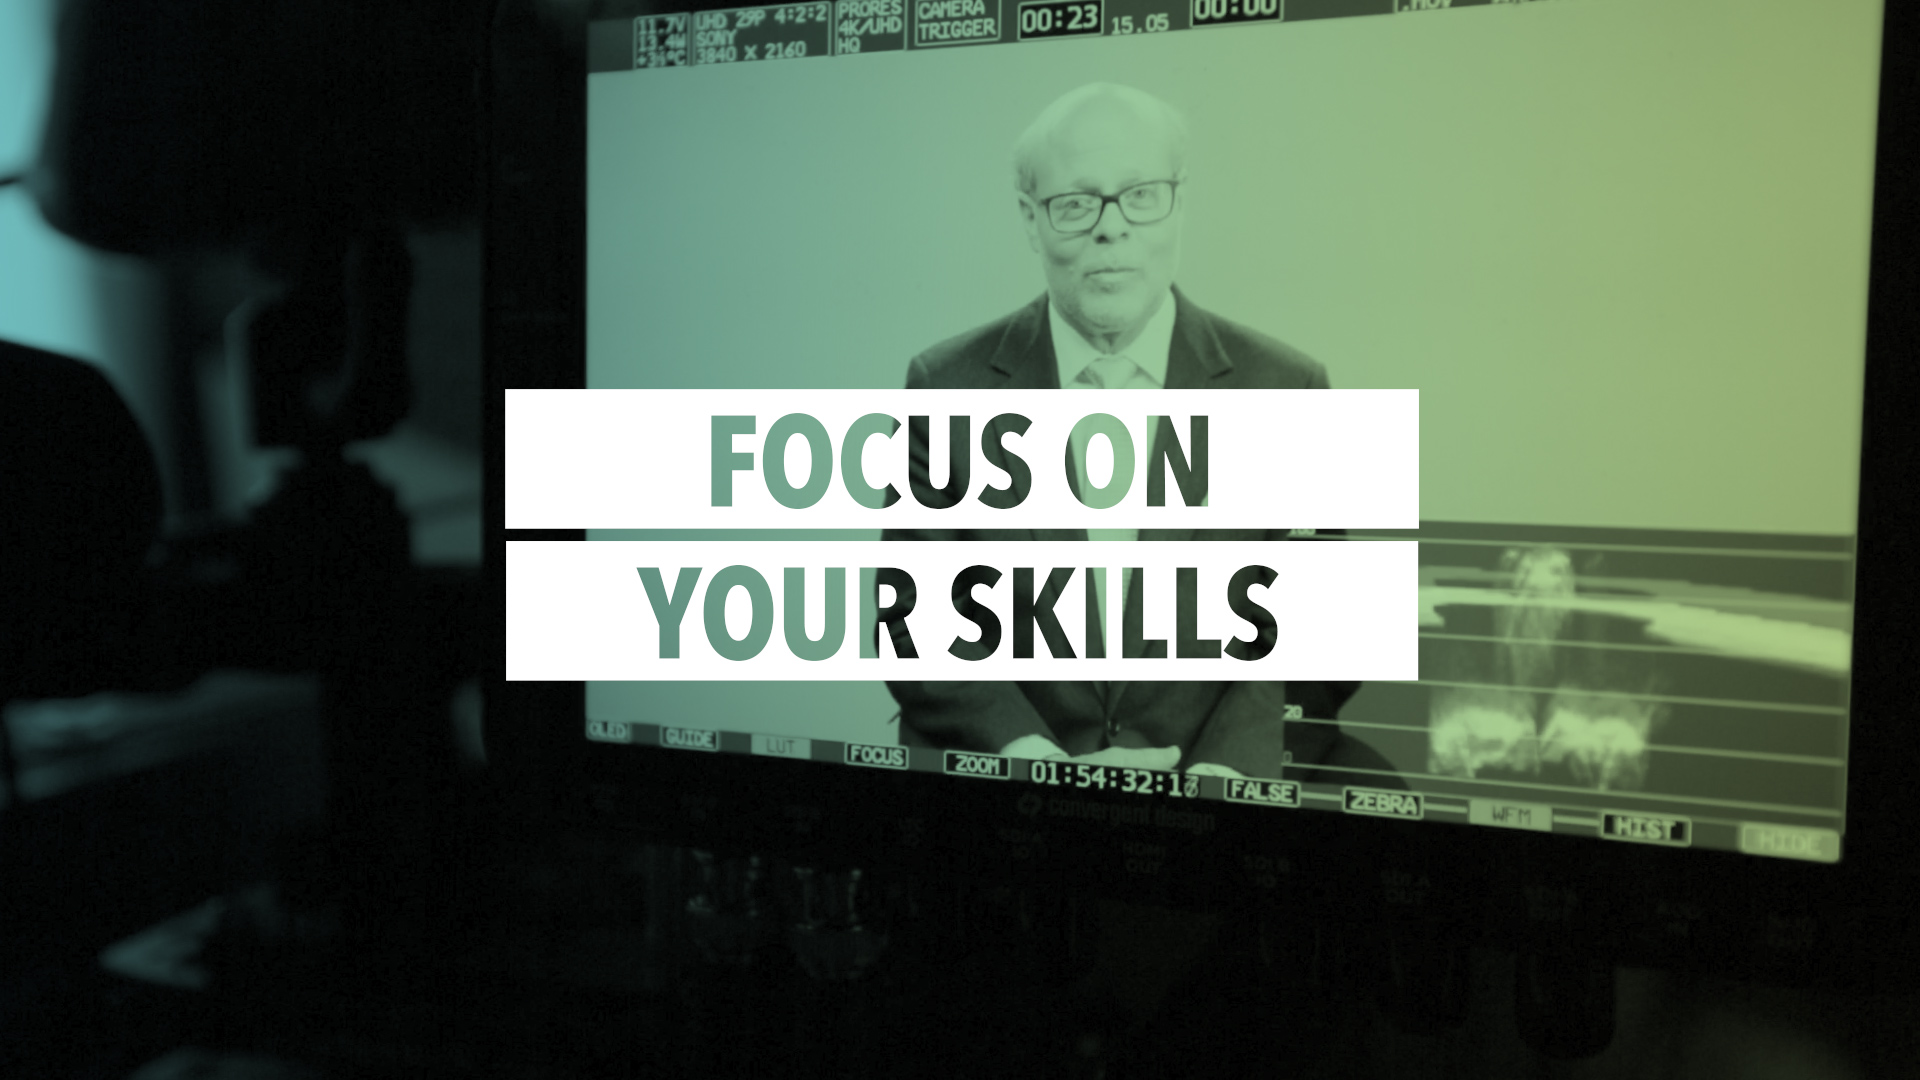 Focus on what you're good at: Focus on Your Skills